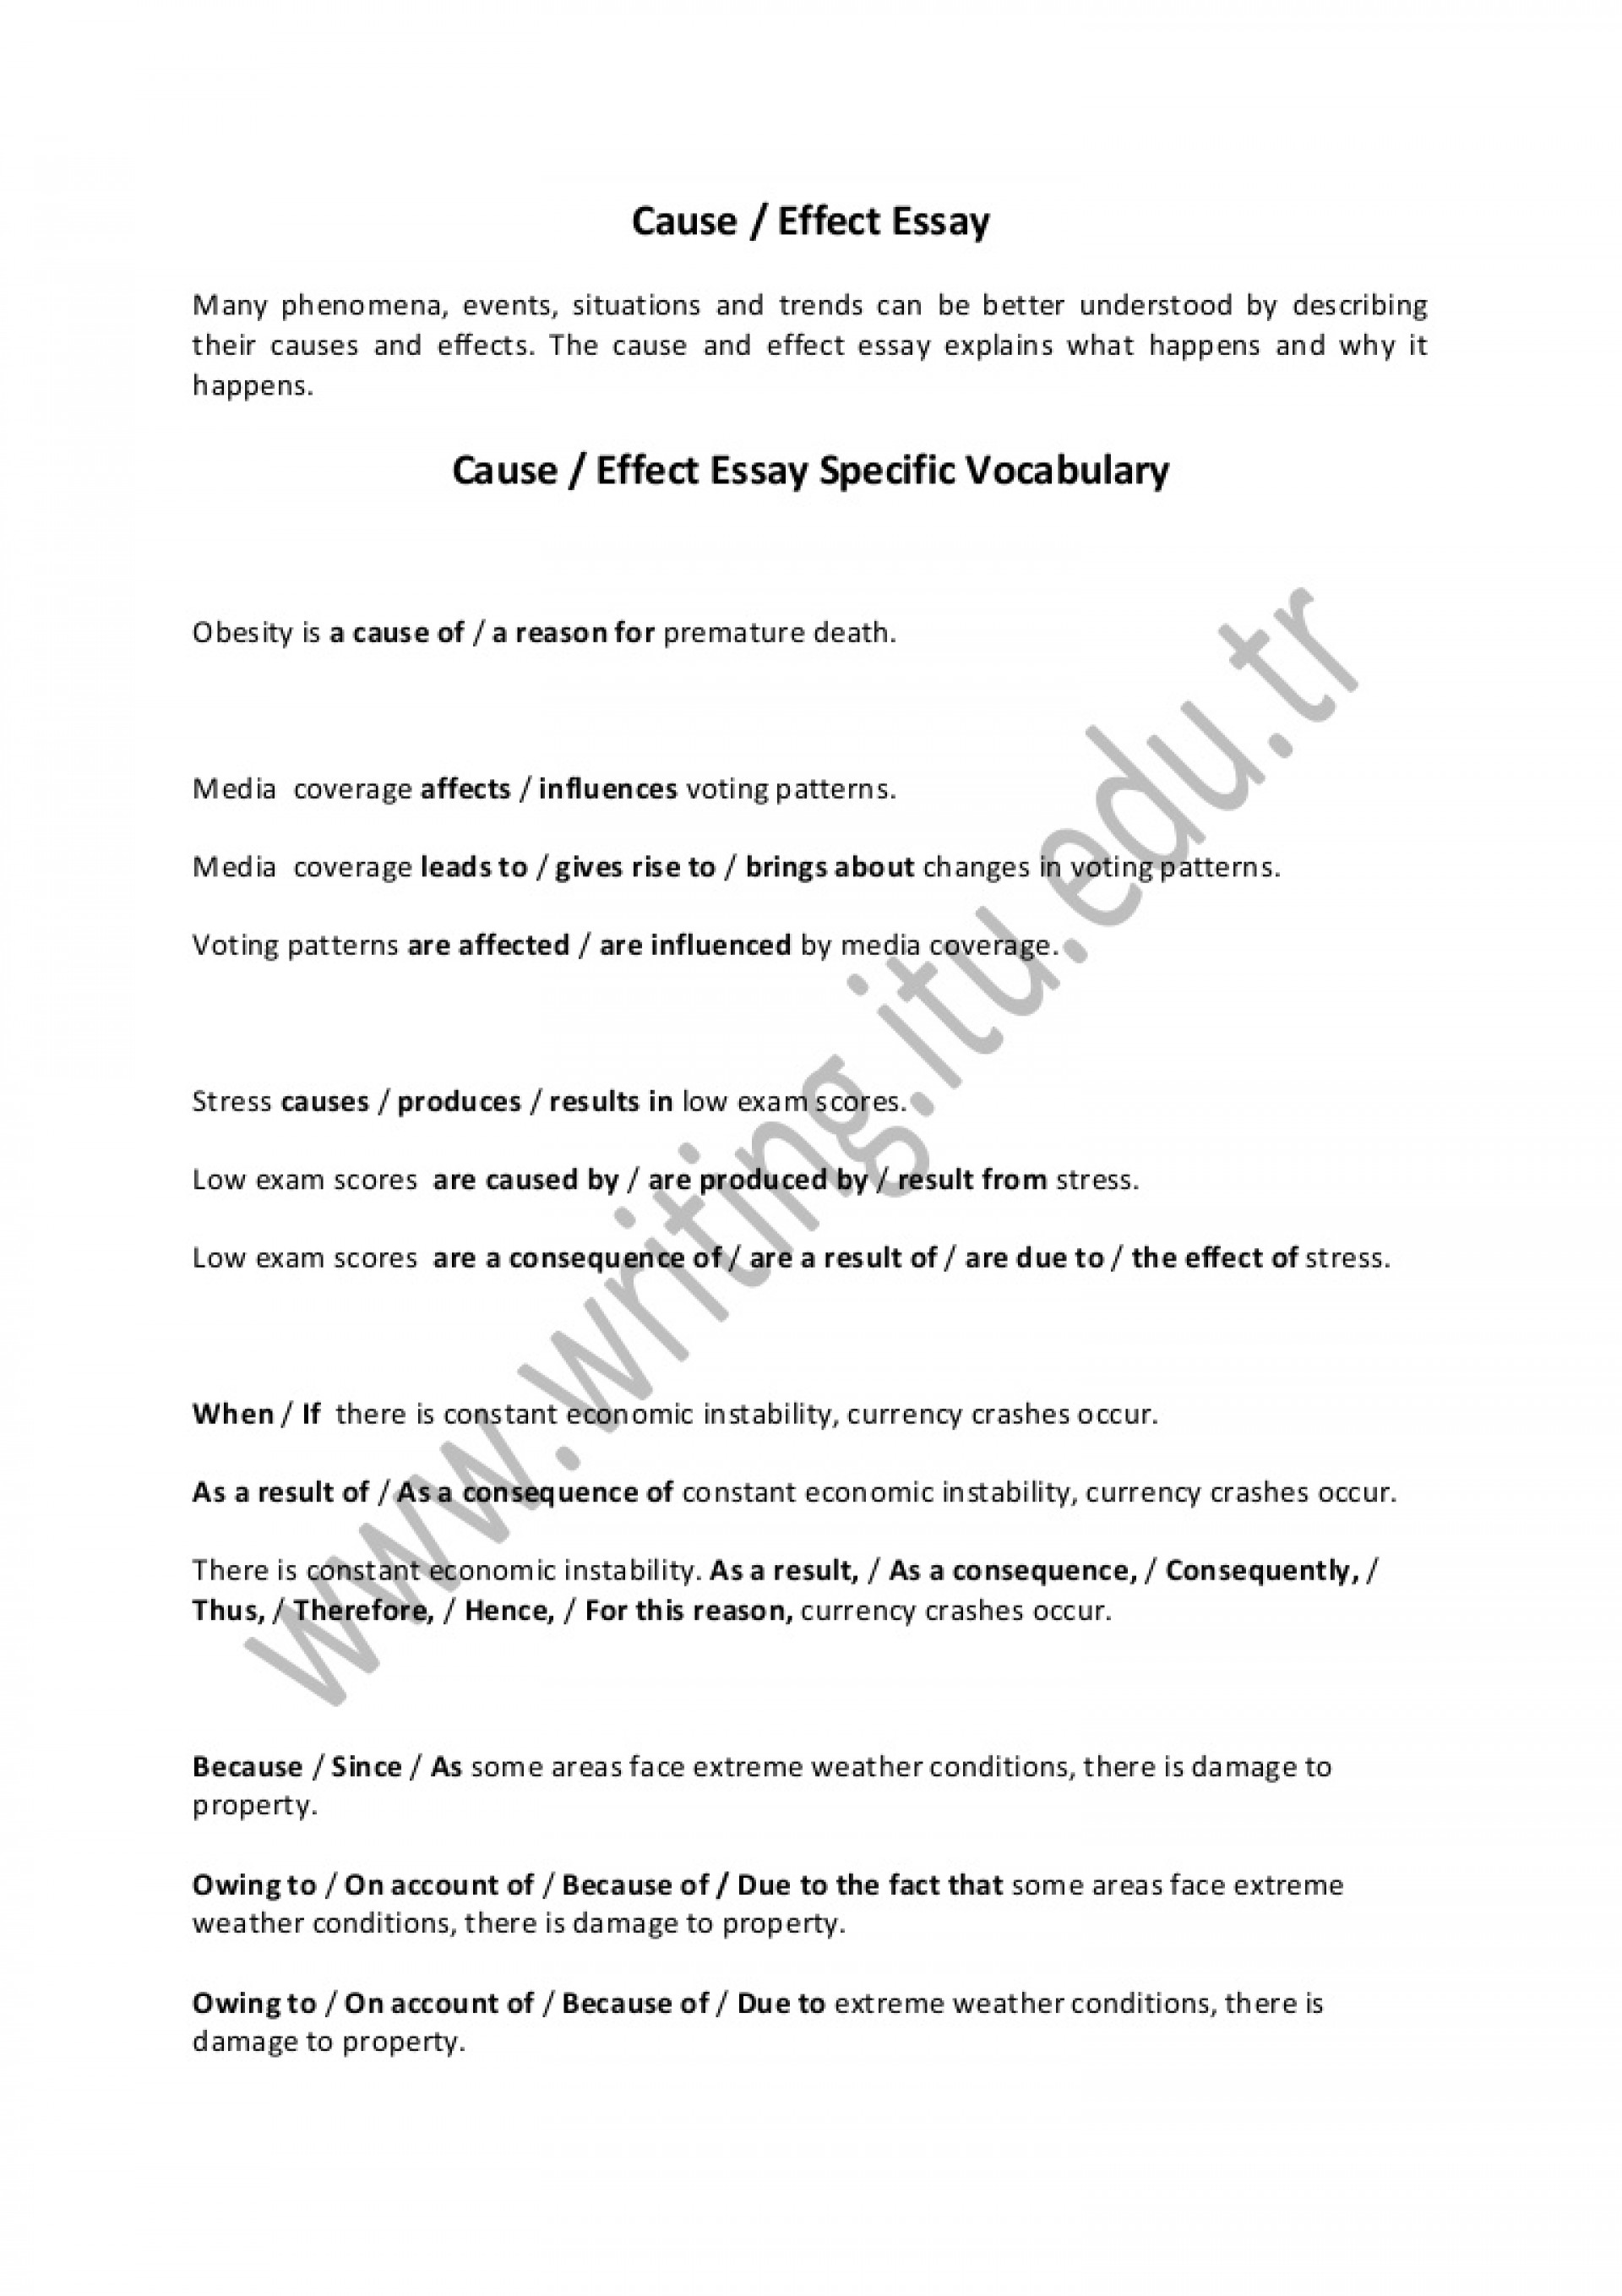 019 Essay Example Causeandeffectessay Thumbnail Cause And Effect Amazing Examples Free Pdf Writing 1920